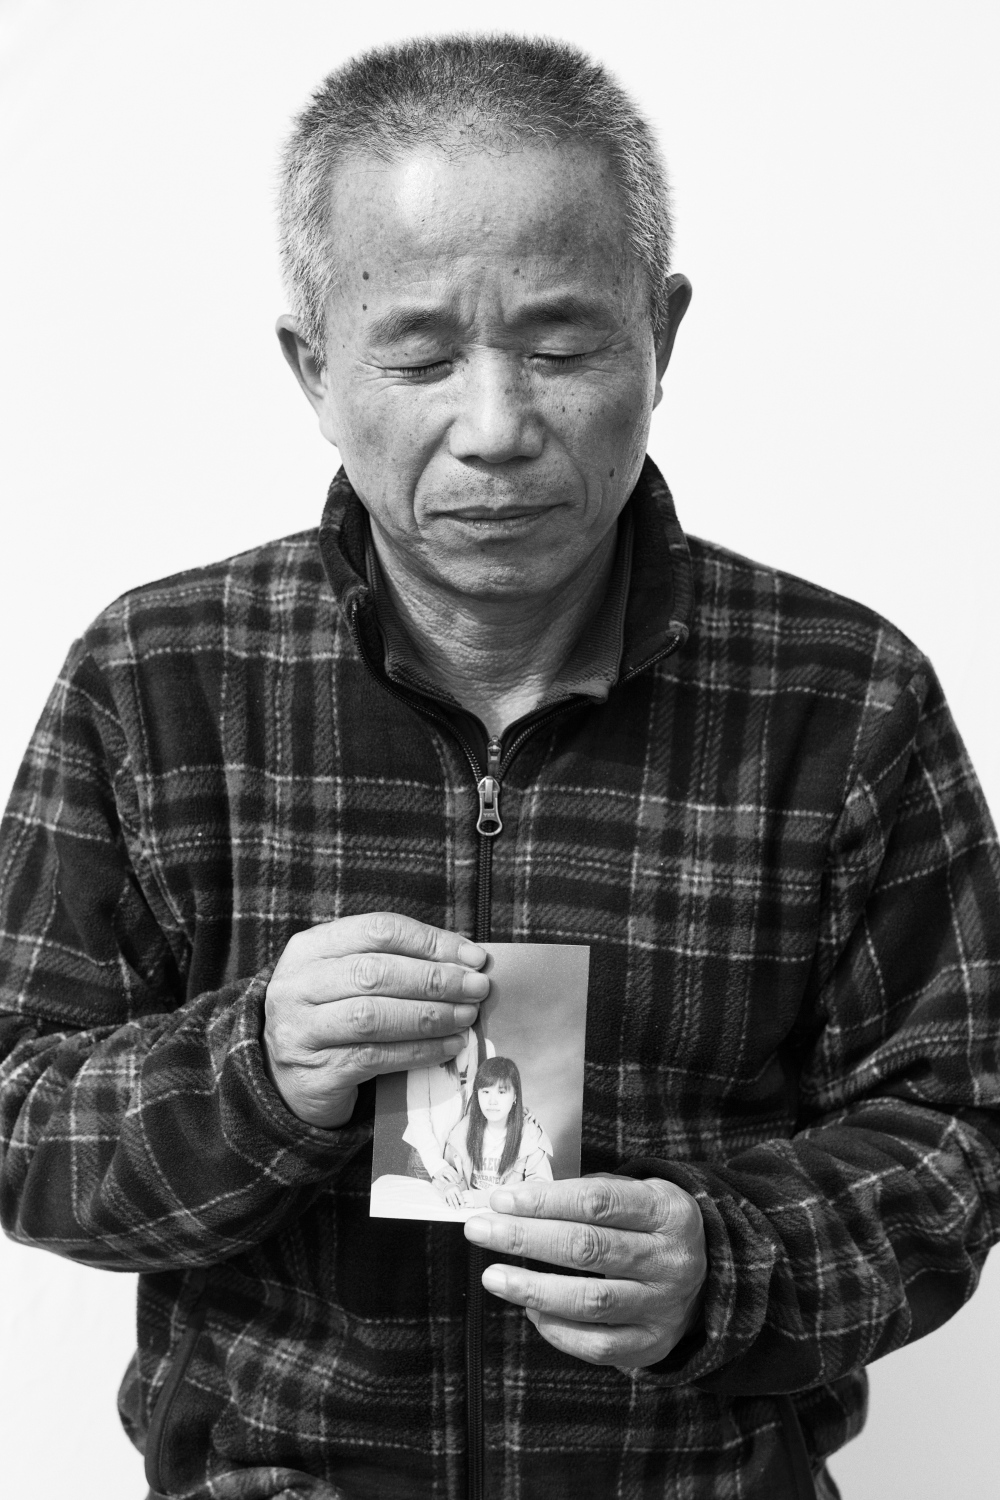 "Hwang Sang-ki holds the picture of his late daughter, Hwang Yu-mee in Sokcho, South Korea on Apr. 11, 2014. Hwang Sang-ki is the very first person who started the struggle against Samsung Electronics right after his daughter's death in 2007. Hwang Yu-mi, a former Samsung Electronics semiconductor factory worker and a daughter of Mr. Hwang worked at Samsung Electronics semiconductor factory from 2003 to 2005 and died of leukemia in 2007. After years of Mr. Hwnag's fight against Samsung and the government agency ""COMWEL,"" Korea Workers' Compensation & Welfare Service, Seoul High Court sentenced that Hwang Yu-mi's death was an industrial accident on Aug. 21, 2014. On the decision, Seoul High Court said: ""There is a possibility that Hwang Yu-mi was exposed to toxic chemicals like benzene, formaldehyde, sulfuric acid which are known to generate leukemia."""